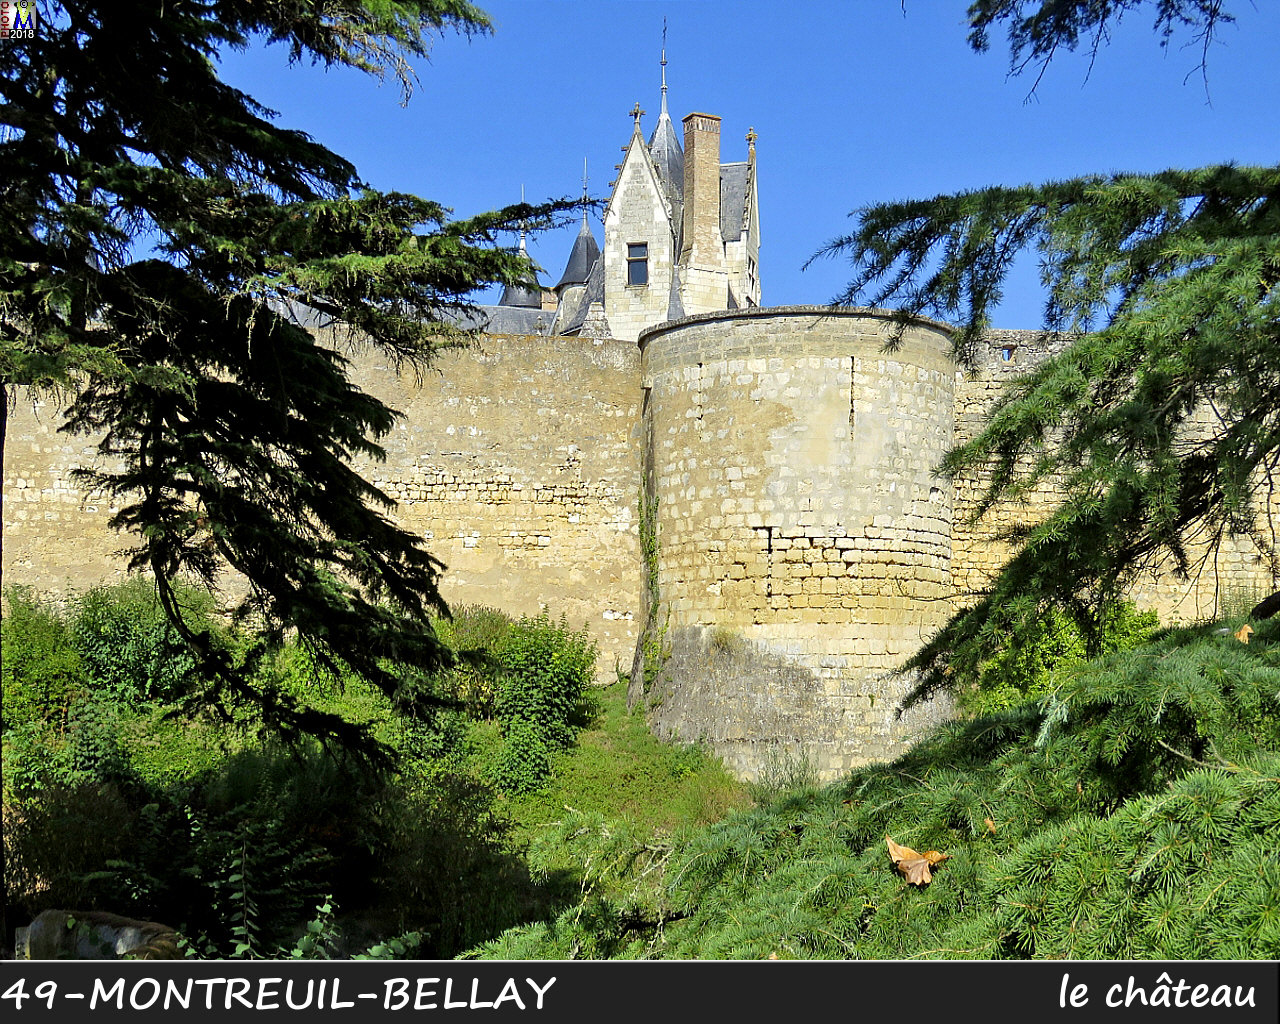 49MONTREUIL-BELLAY_chateau_1062.jpg